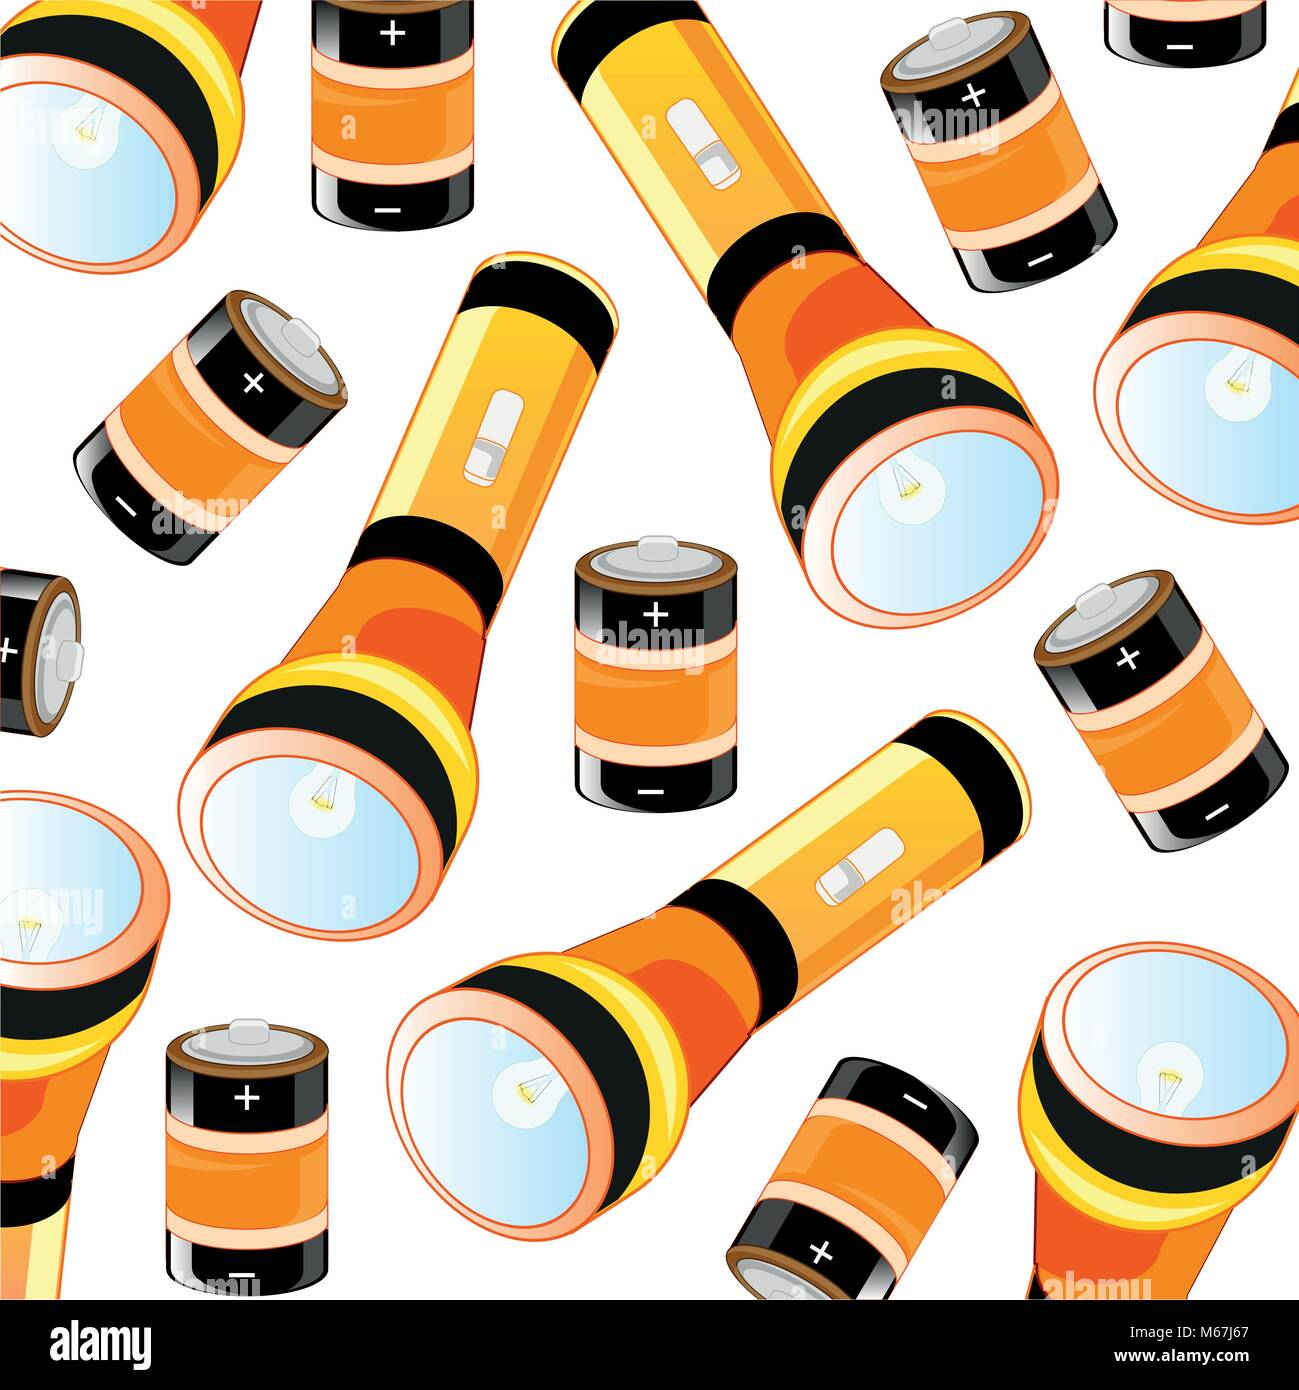 Flash-light and battery pattern - Stock Vector